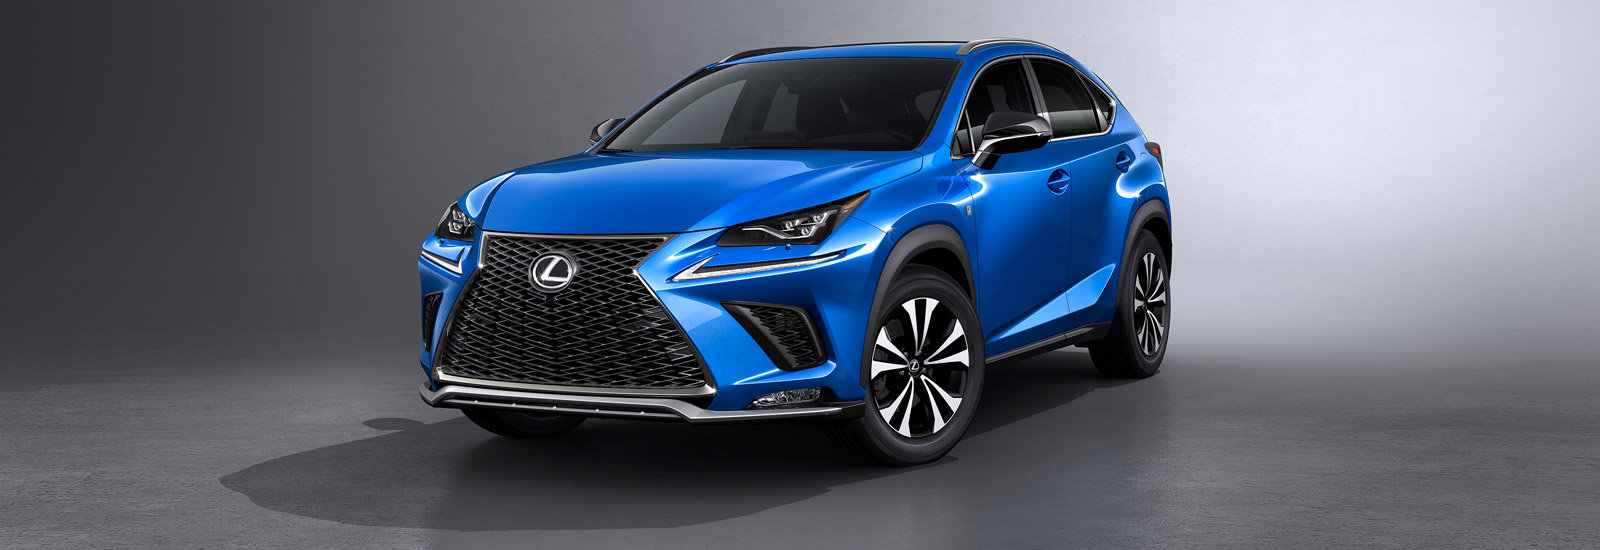 2018 lexus model release. beautiful lexus bolder fsport models shown here will go on sale in 2018 too intended 2018 lexus model release